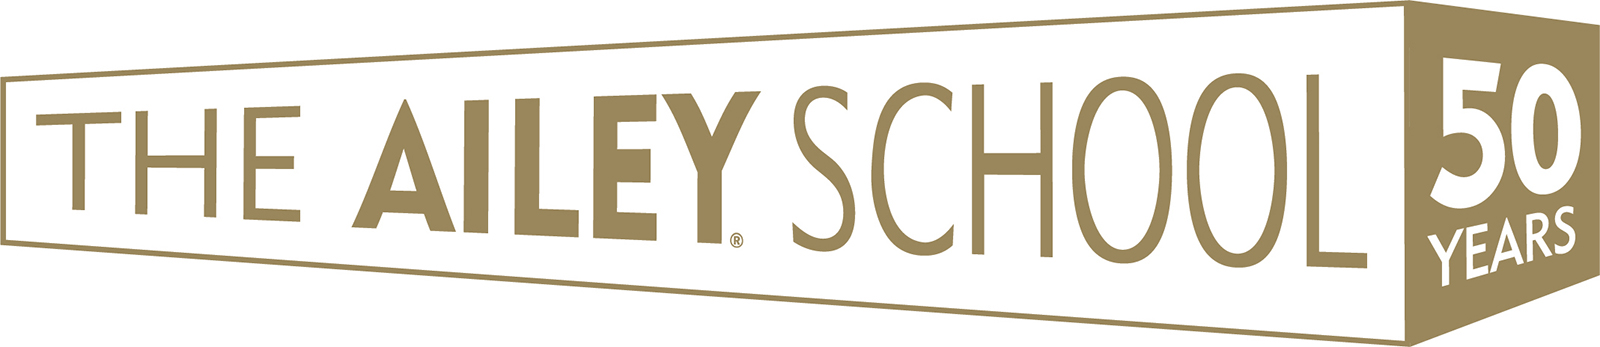 The Ailey School 50th Anniversary logo